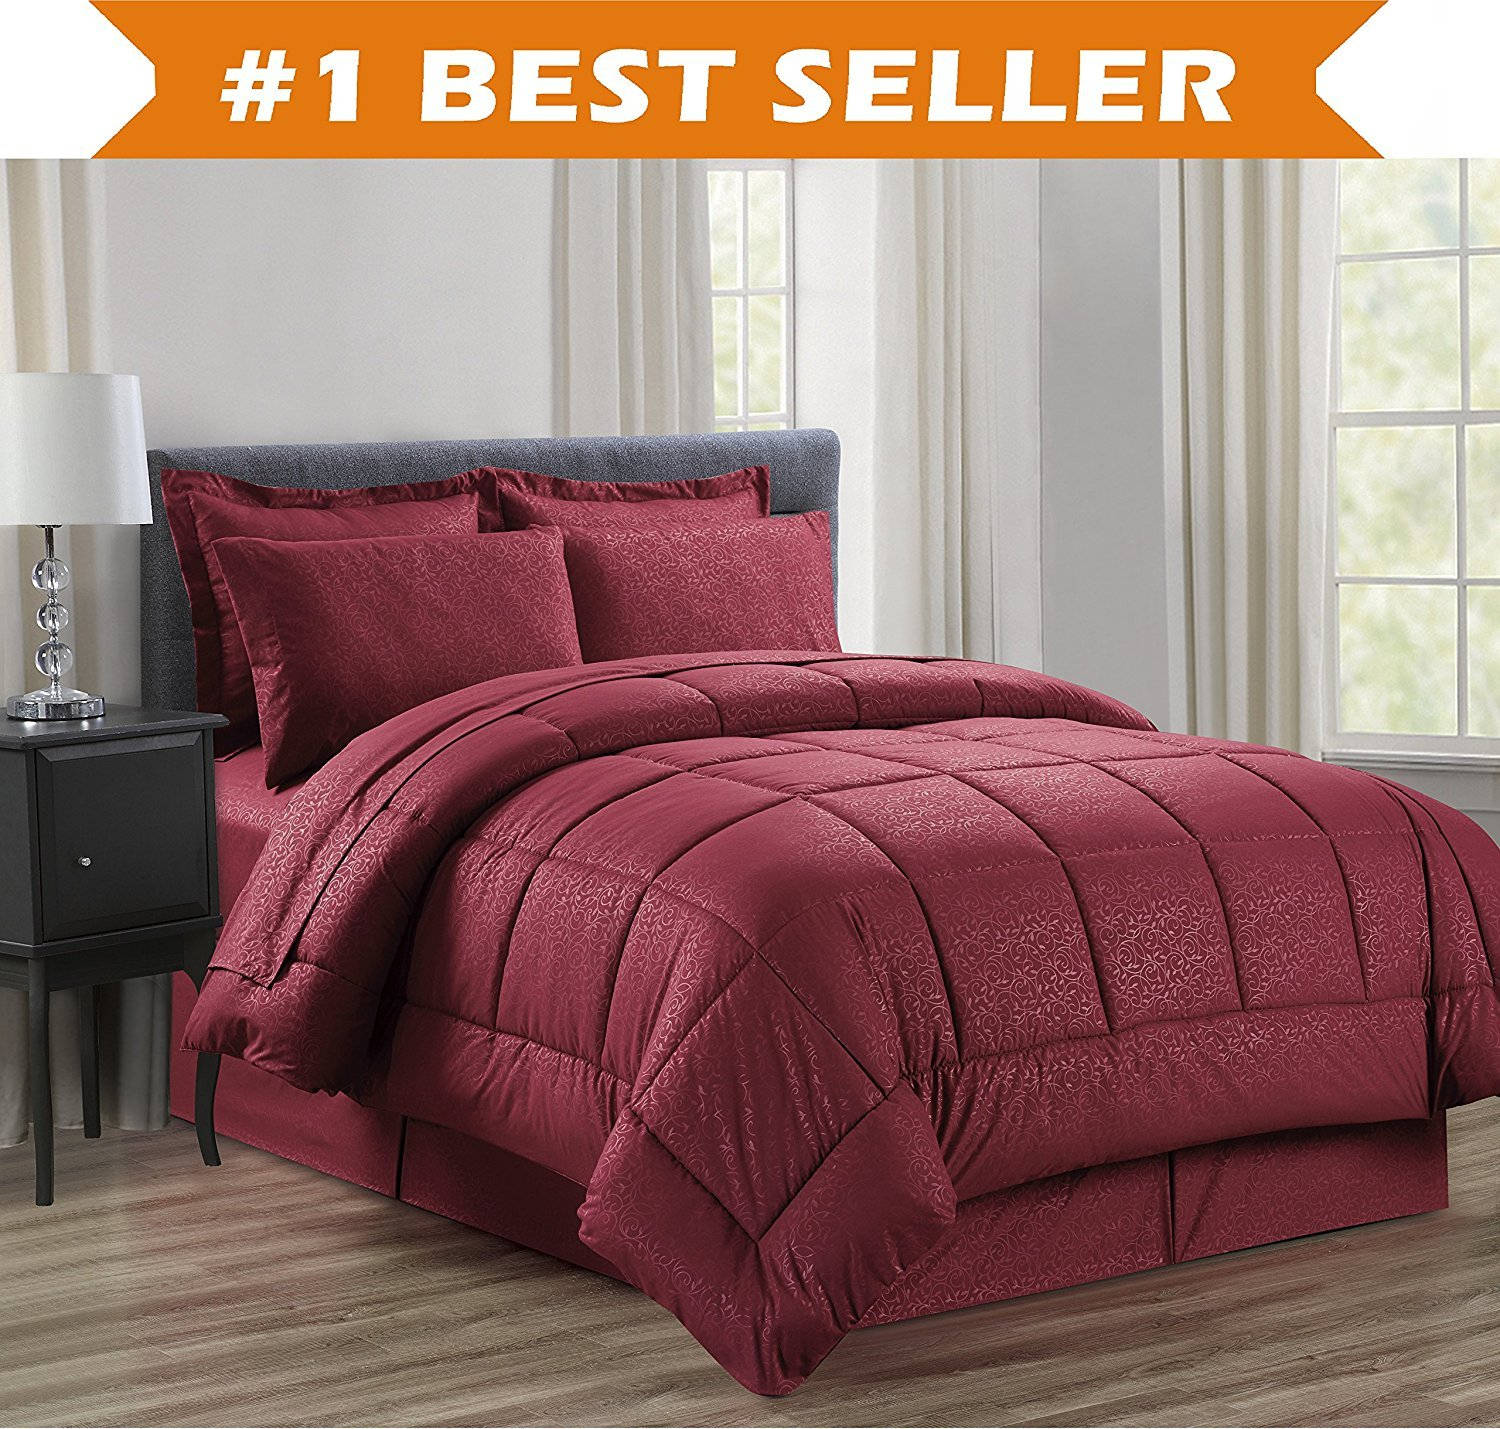 8-Piece Comforter Set -HypoAllergenic- Full/Queen, Burgundy